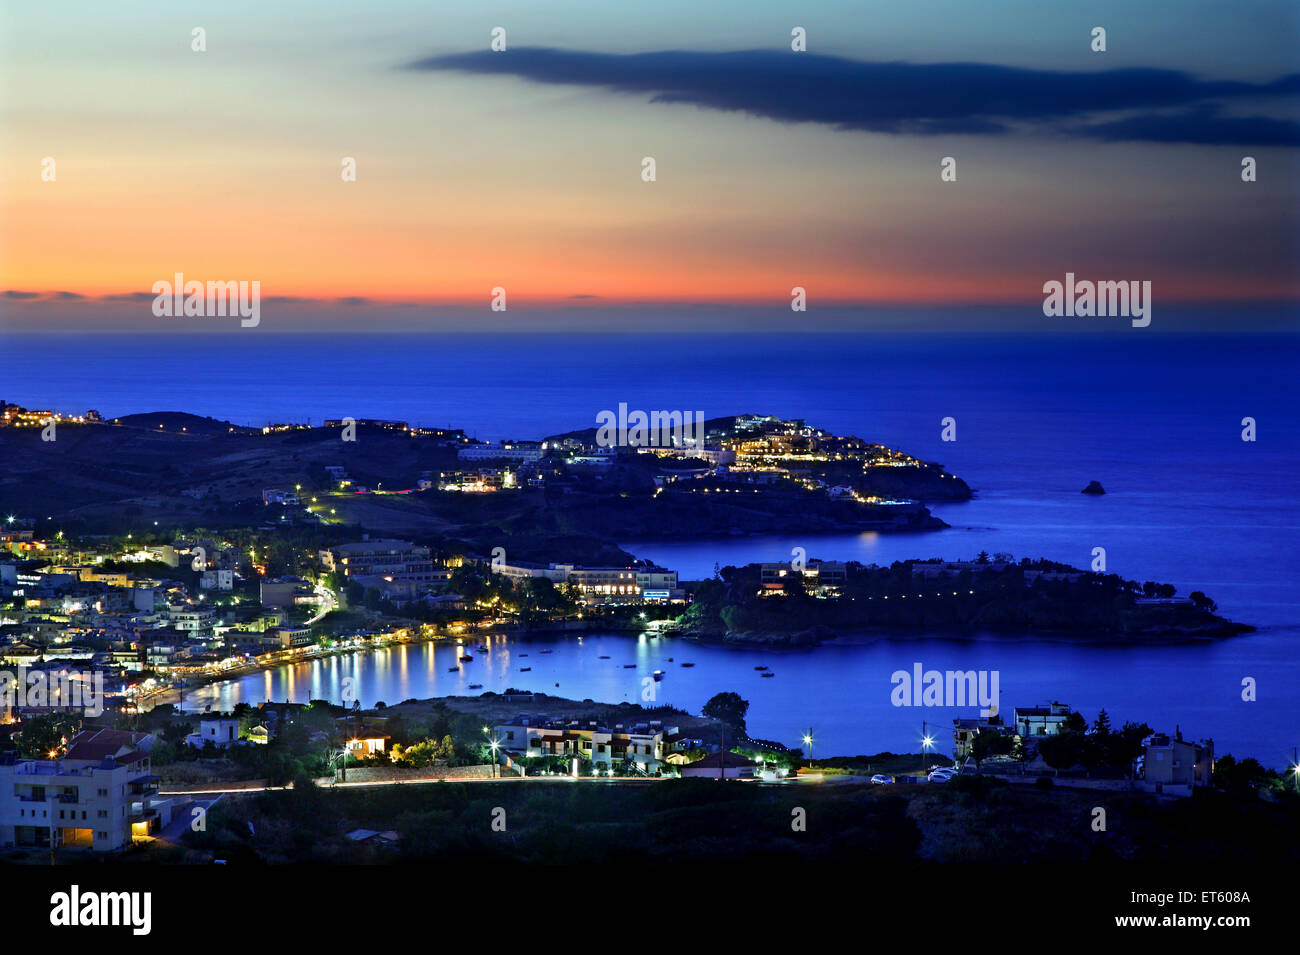 Panoramic night view of Agia Pelagia, Heraklion, Crete, Greece. - Stock Image